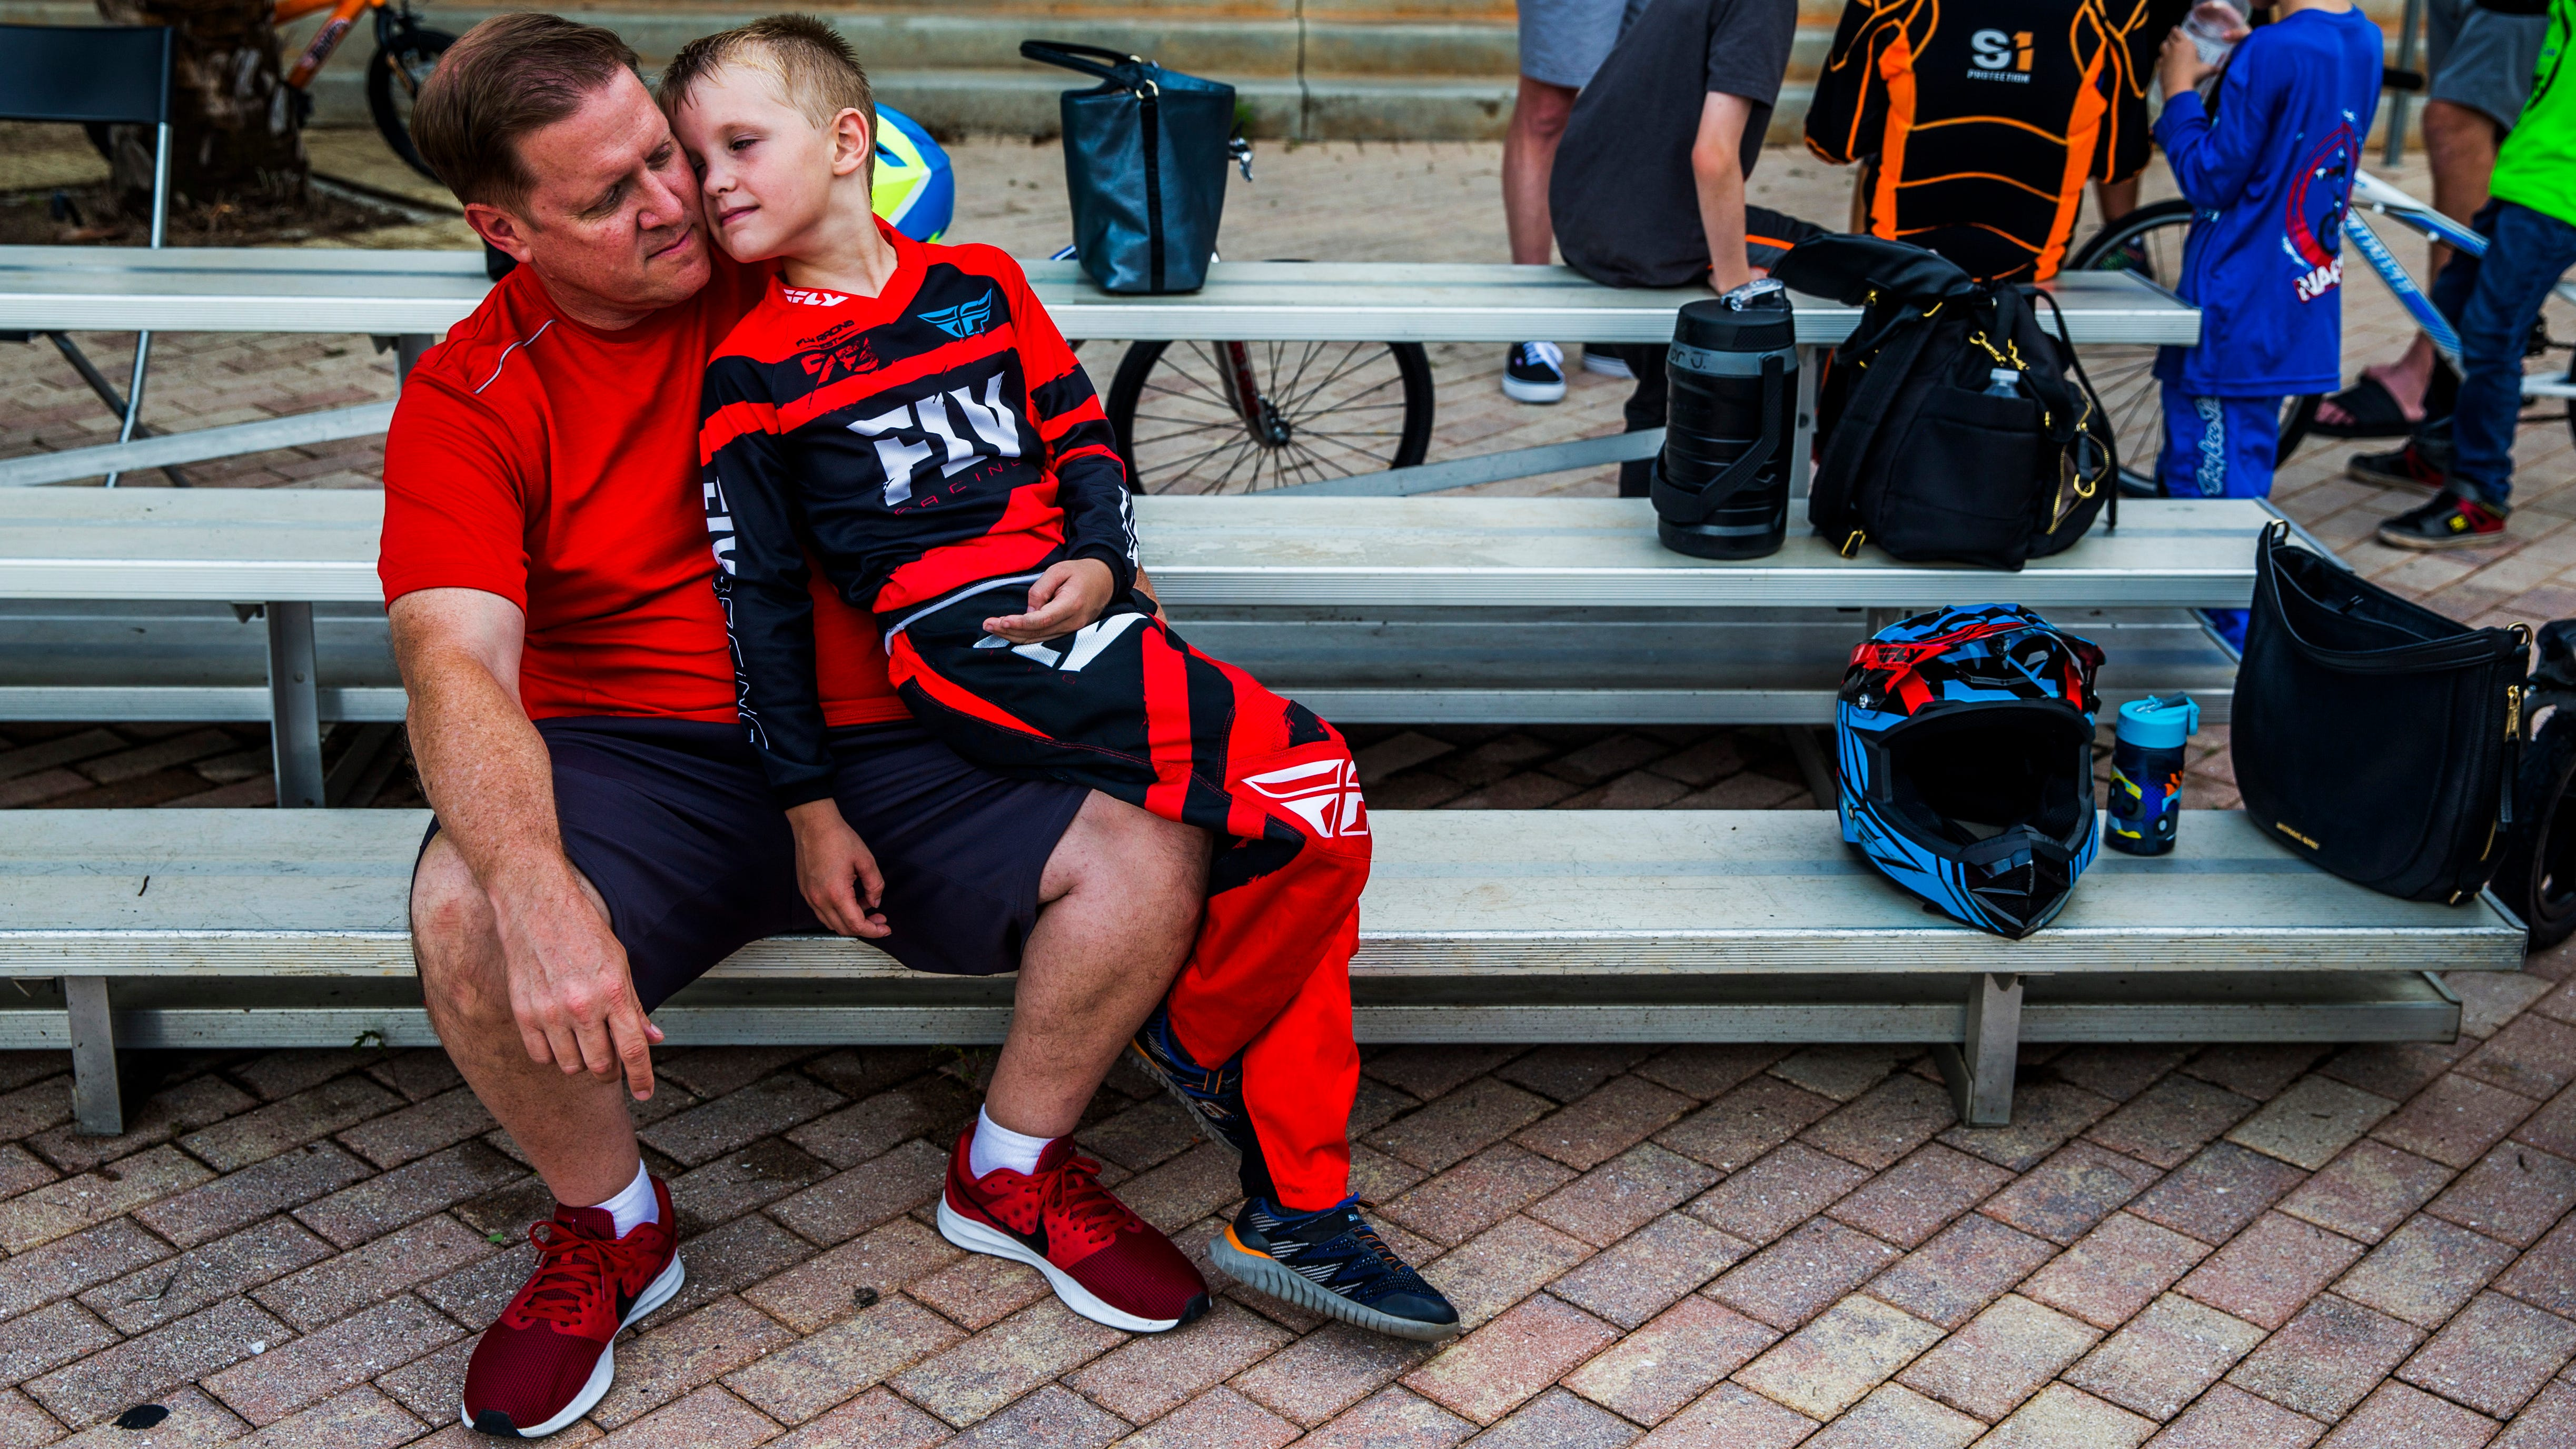 Scott Jackson of Naples snuggles with his son Trevor, 6, before the Wednesday night races begin at the Naples BMX track in Golden Gate City on Wednesday, Aug. 8, 2018.